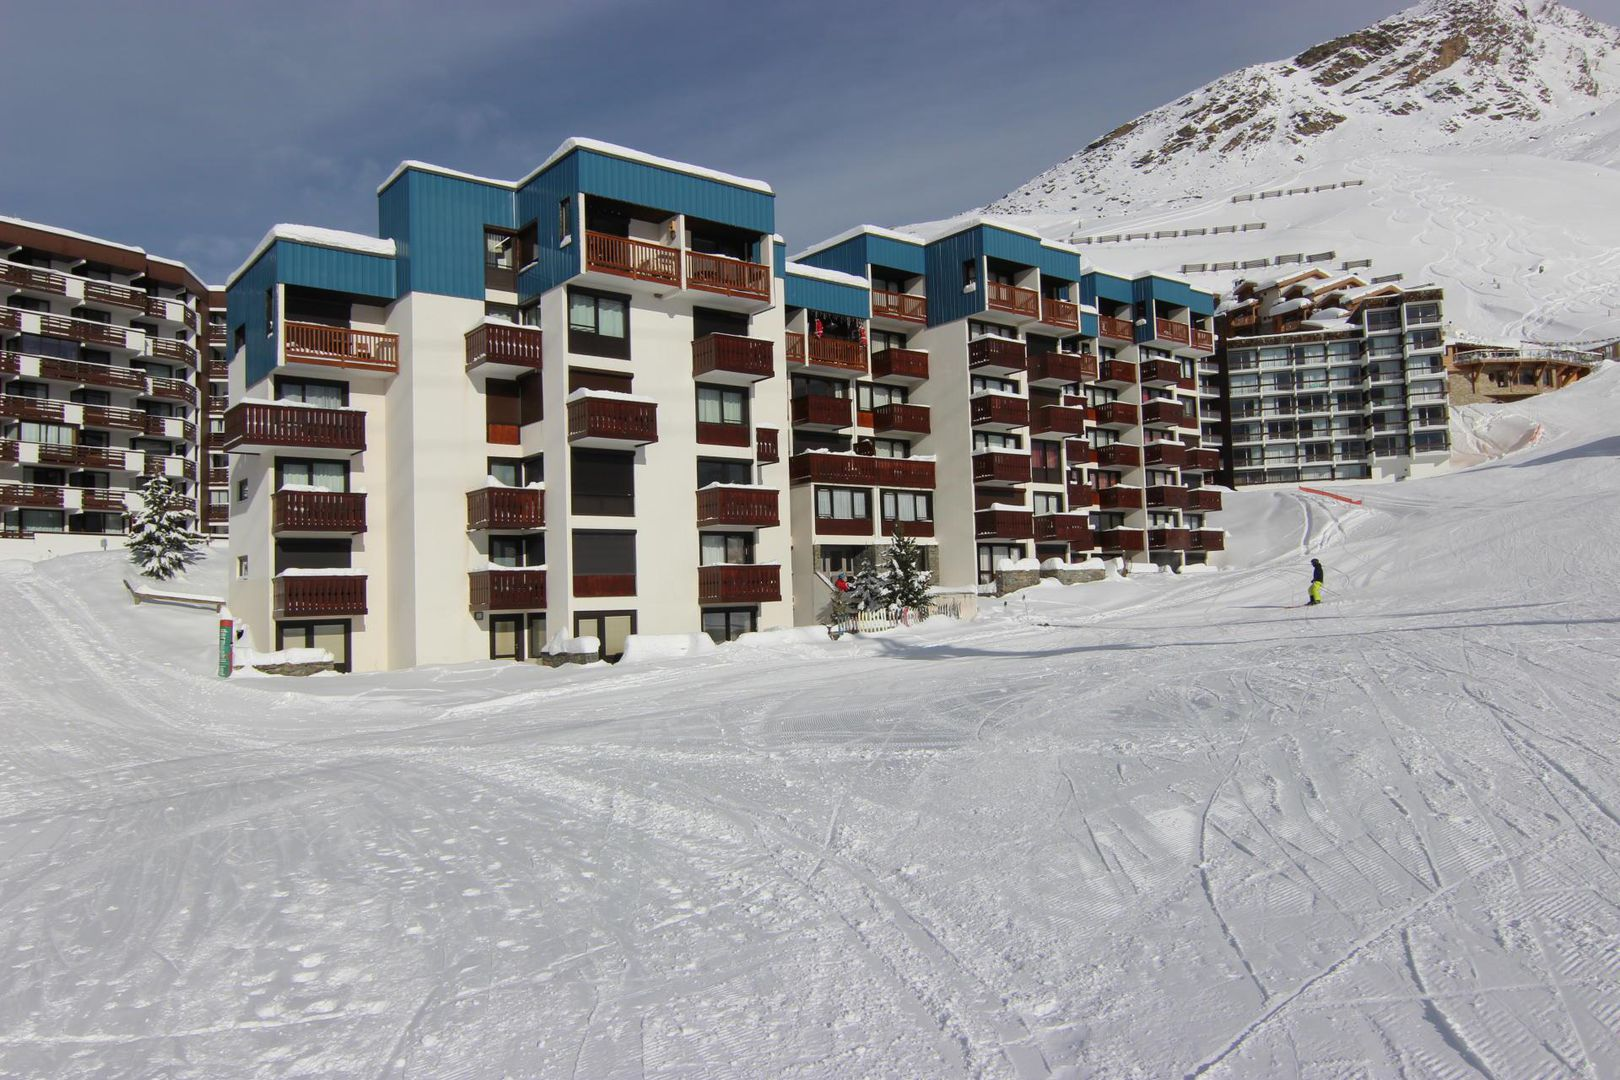 Résidence Olympic in Val Thorens Les Trois Vallées, Résidence Olympic / Frankreich